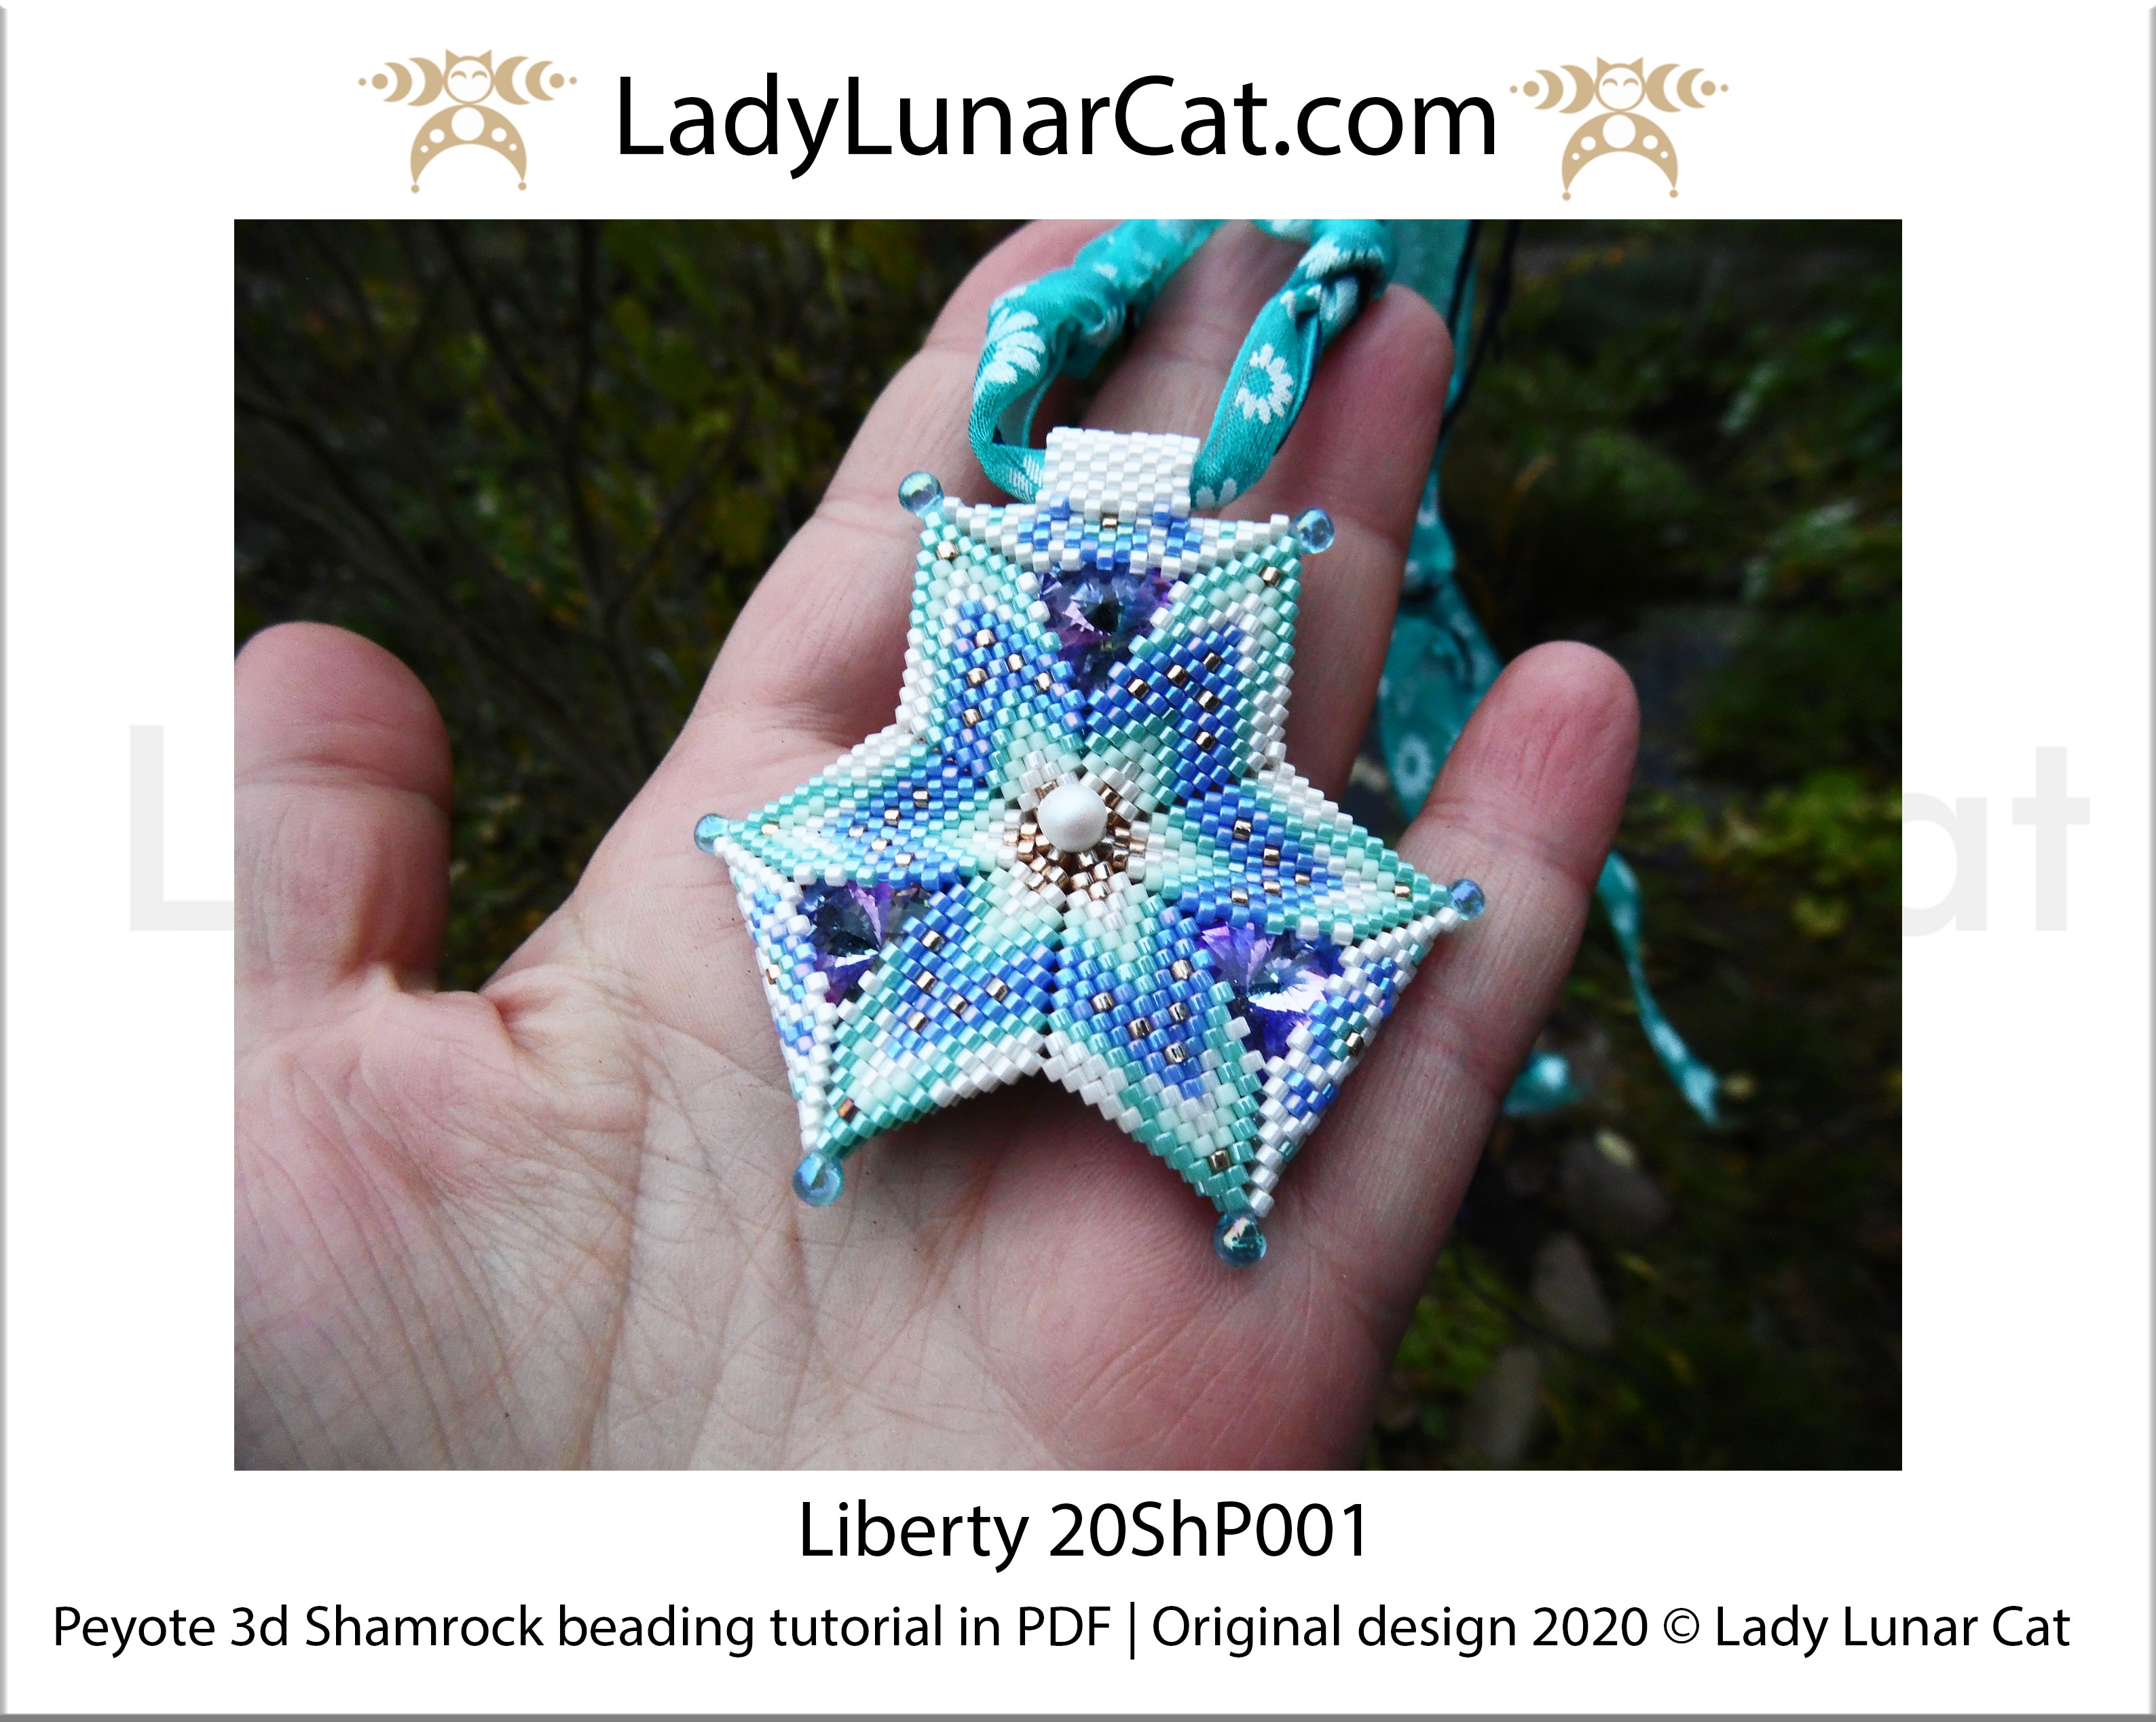 Beading tutorial peyote 3d Shamrock Liberty 20ShP001 Step by step instruction by Lady Lunar Cat | Beading pattern